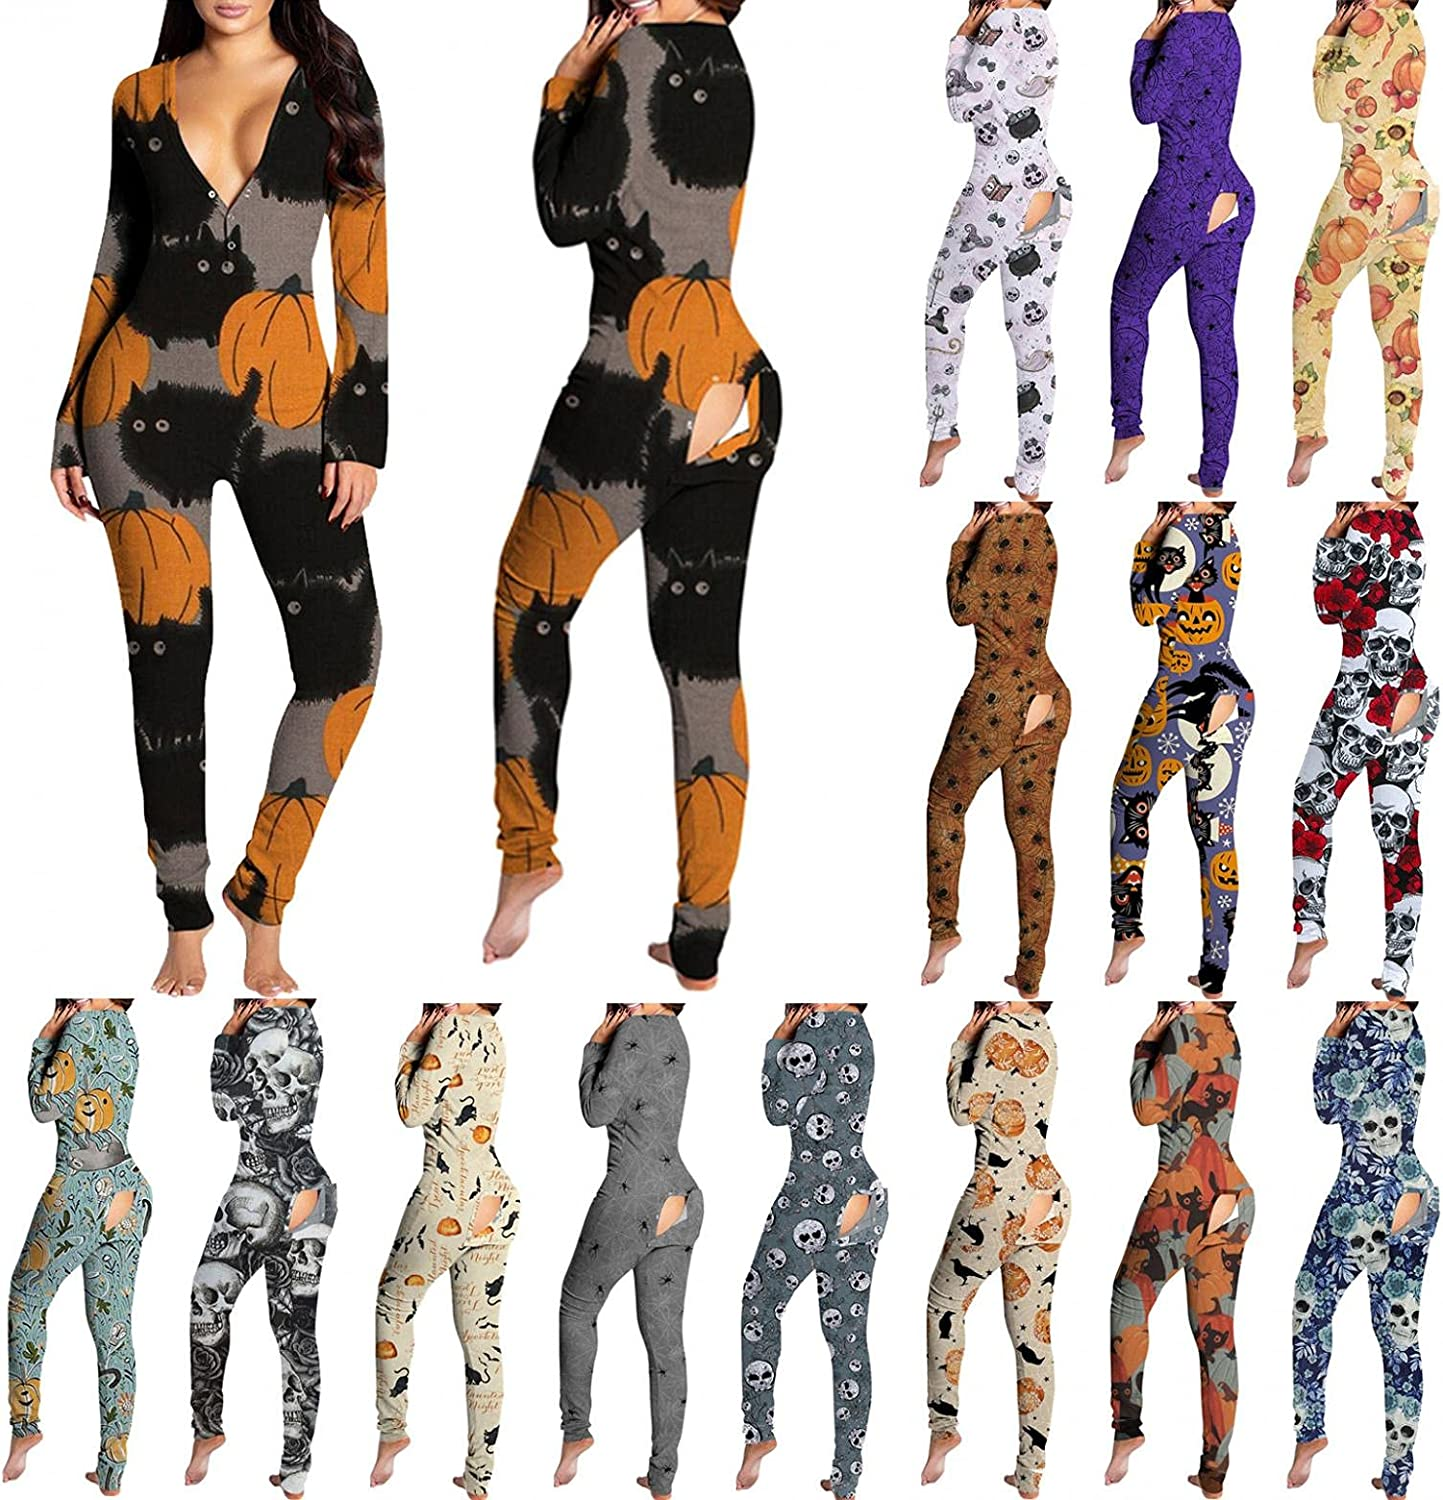 Lingbing Halloween Jumpsuits for Women, Funny Cute Pumpkin Black Cat Graphic Bodycon Bodysuits Onesies Pajamas Butt Flap